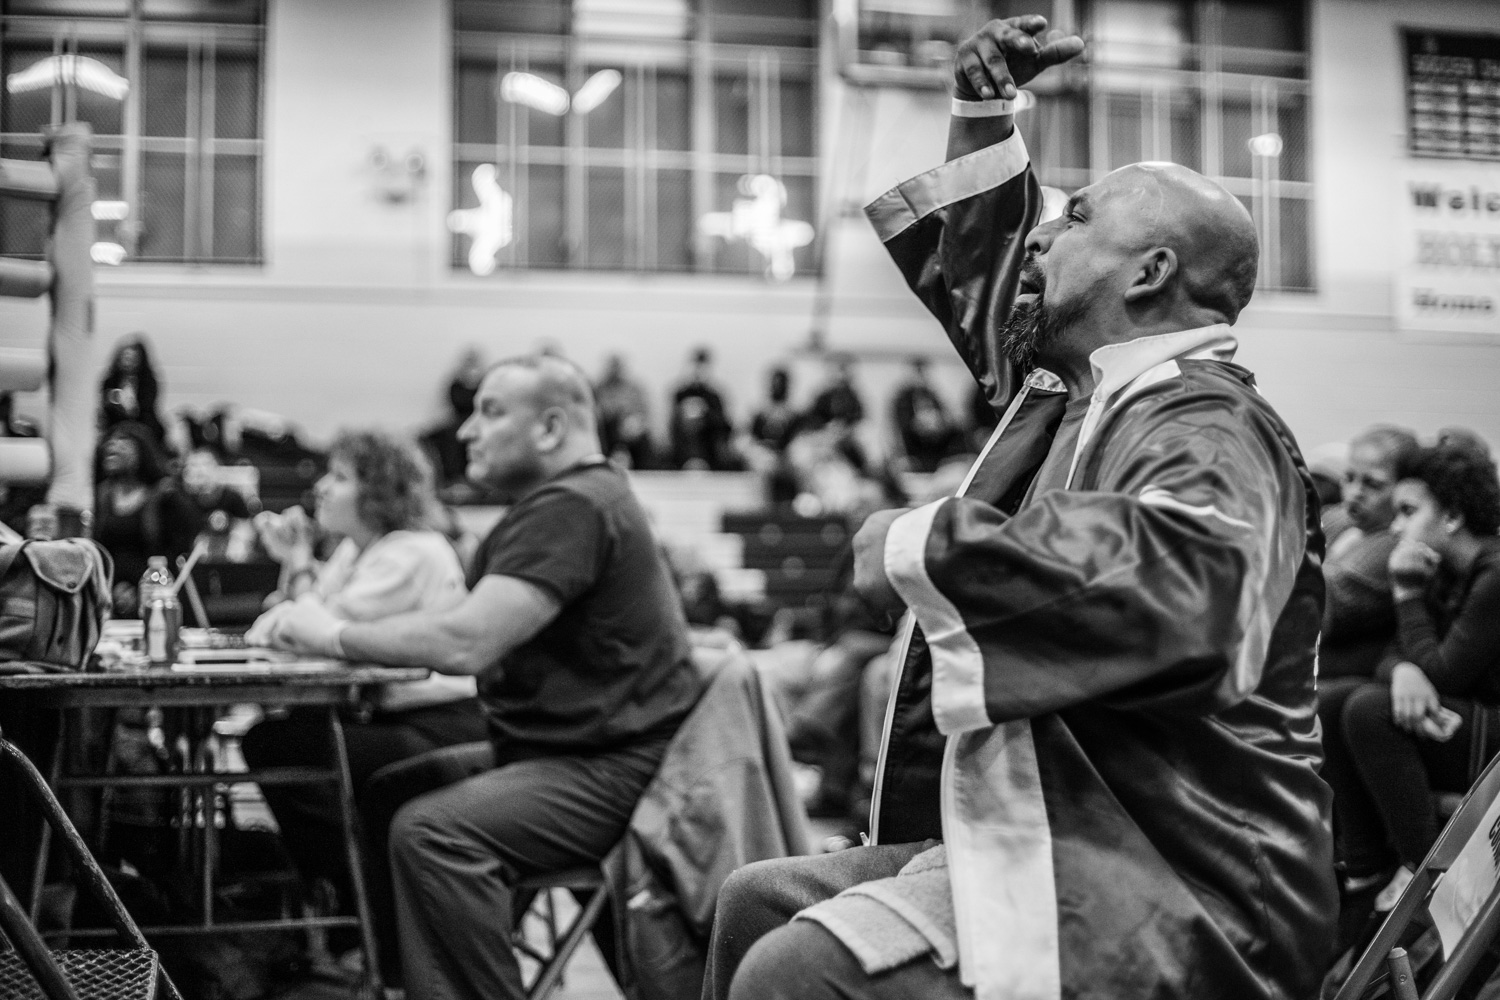 """""""That's it baby! Left jab!"""" Aureliano Sosa, head coach at Flatbush Gardens boxing club,giving advice from the corner at Shu Shu's fight in Holy Cross High School, Queens on March 6, 2015."""